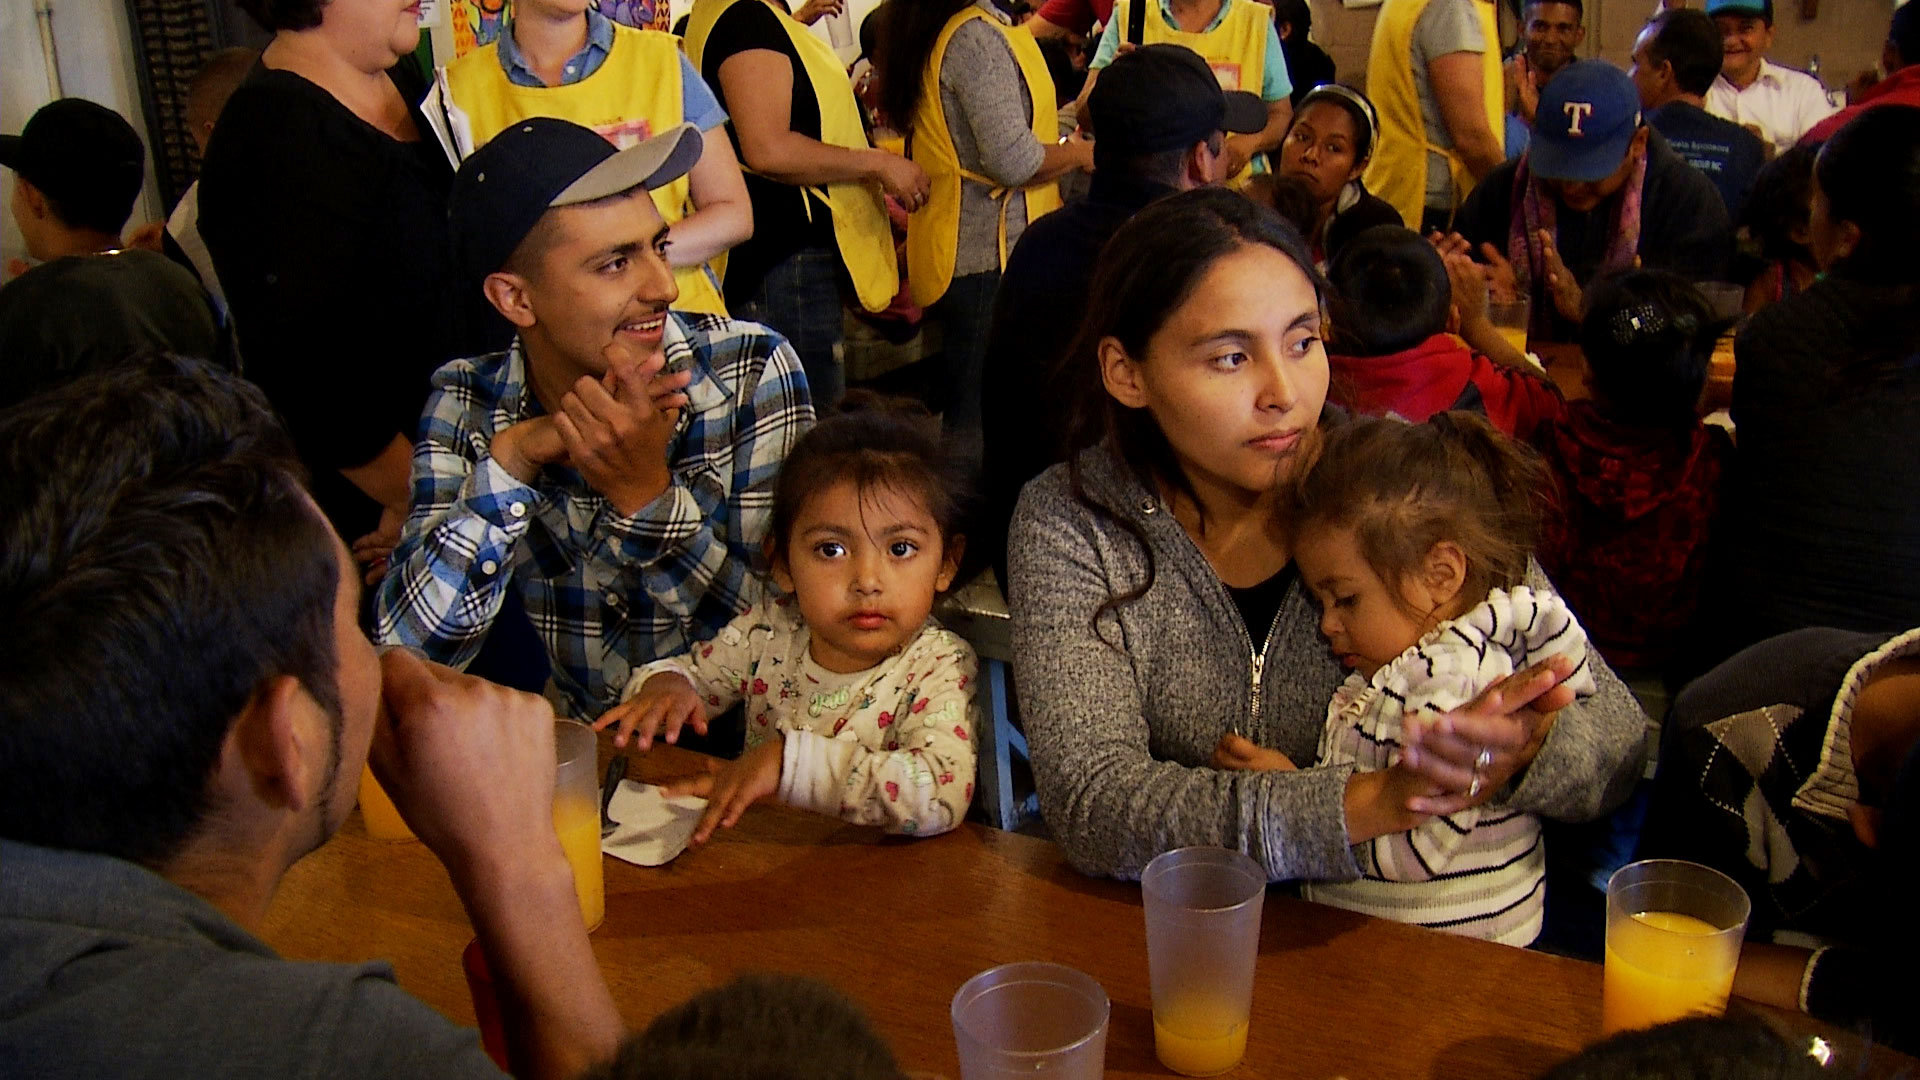 A family awaits meal service at Kino Border Initiative's aid center in Nogales, Sonora on October 29, 2019. The nonprofit assists migrants and deportees in the city.